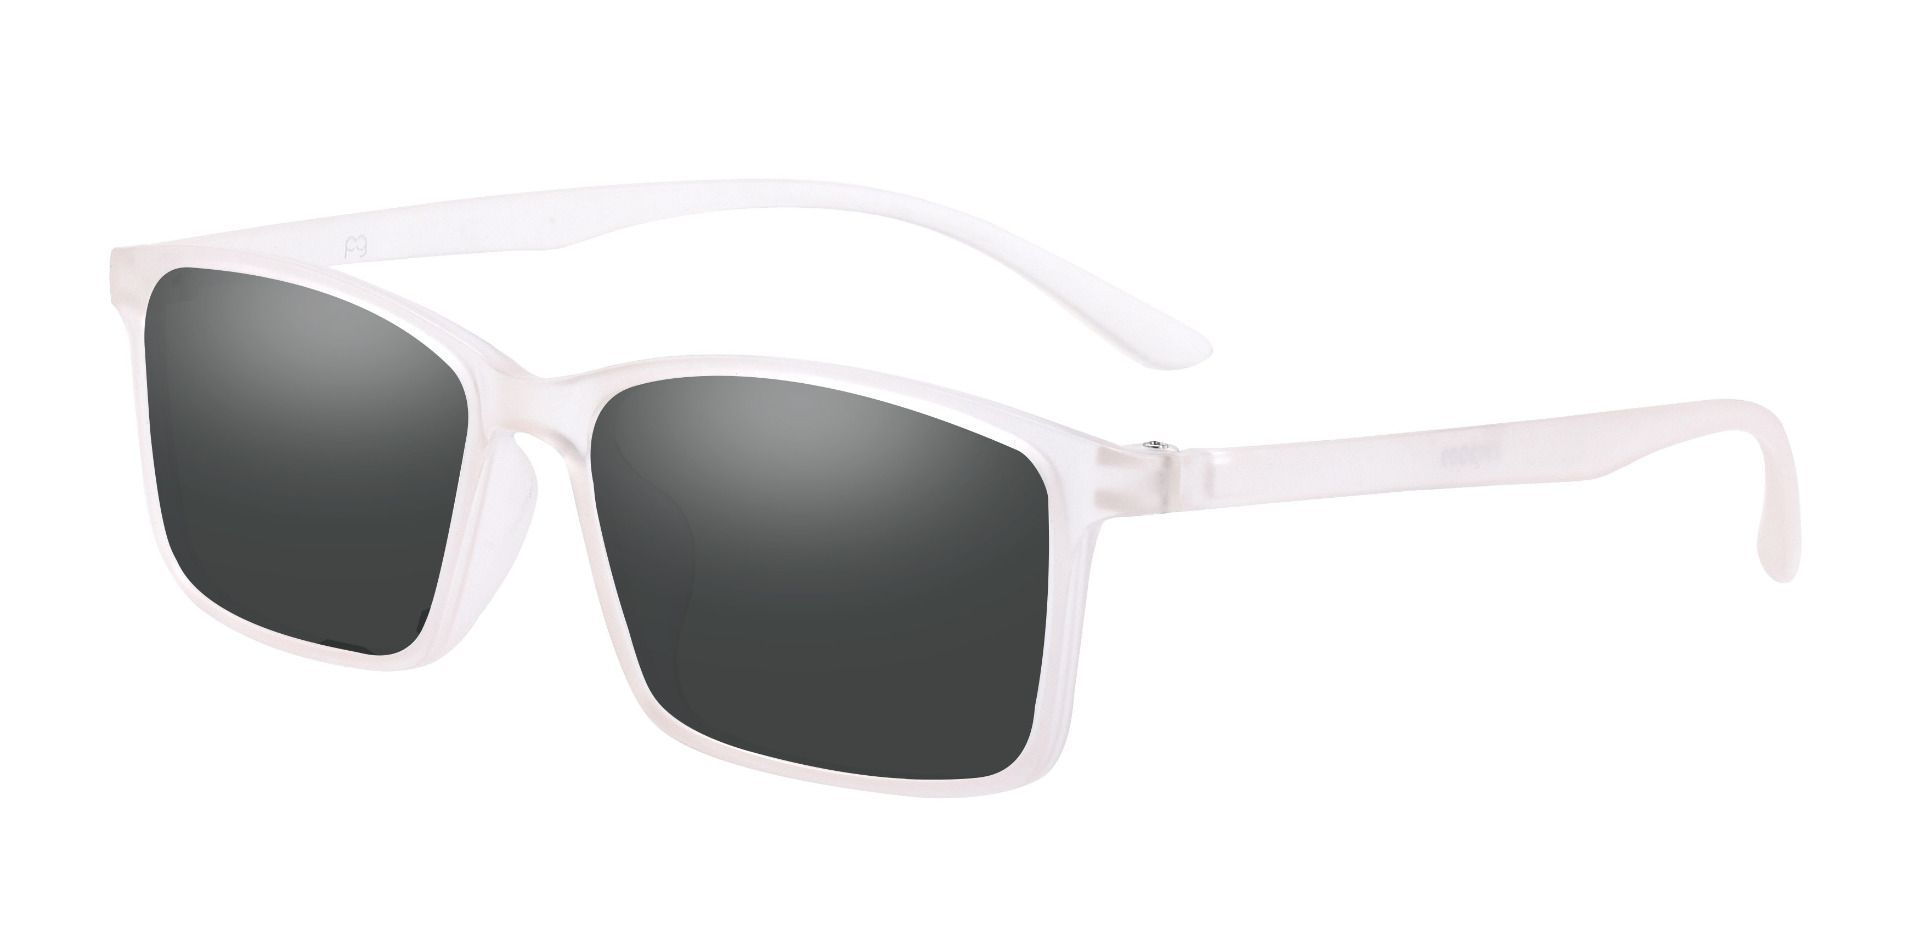 Horizon Rectangle Prescription Sunglasses - Gray Frame With Gray Lenses